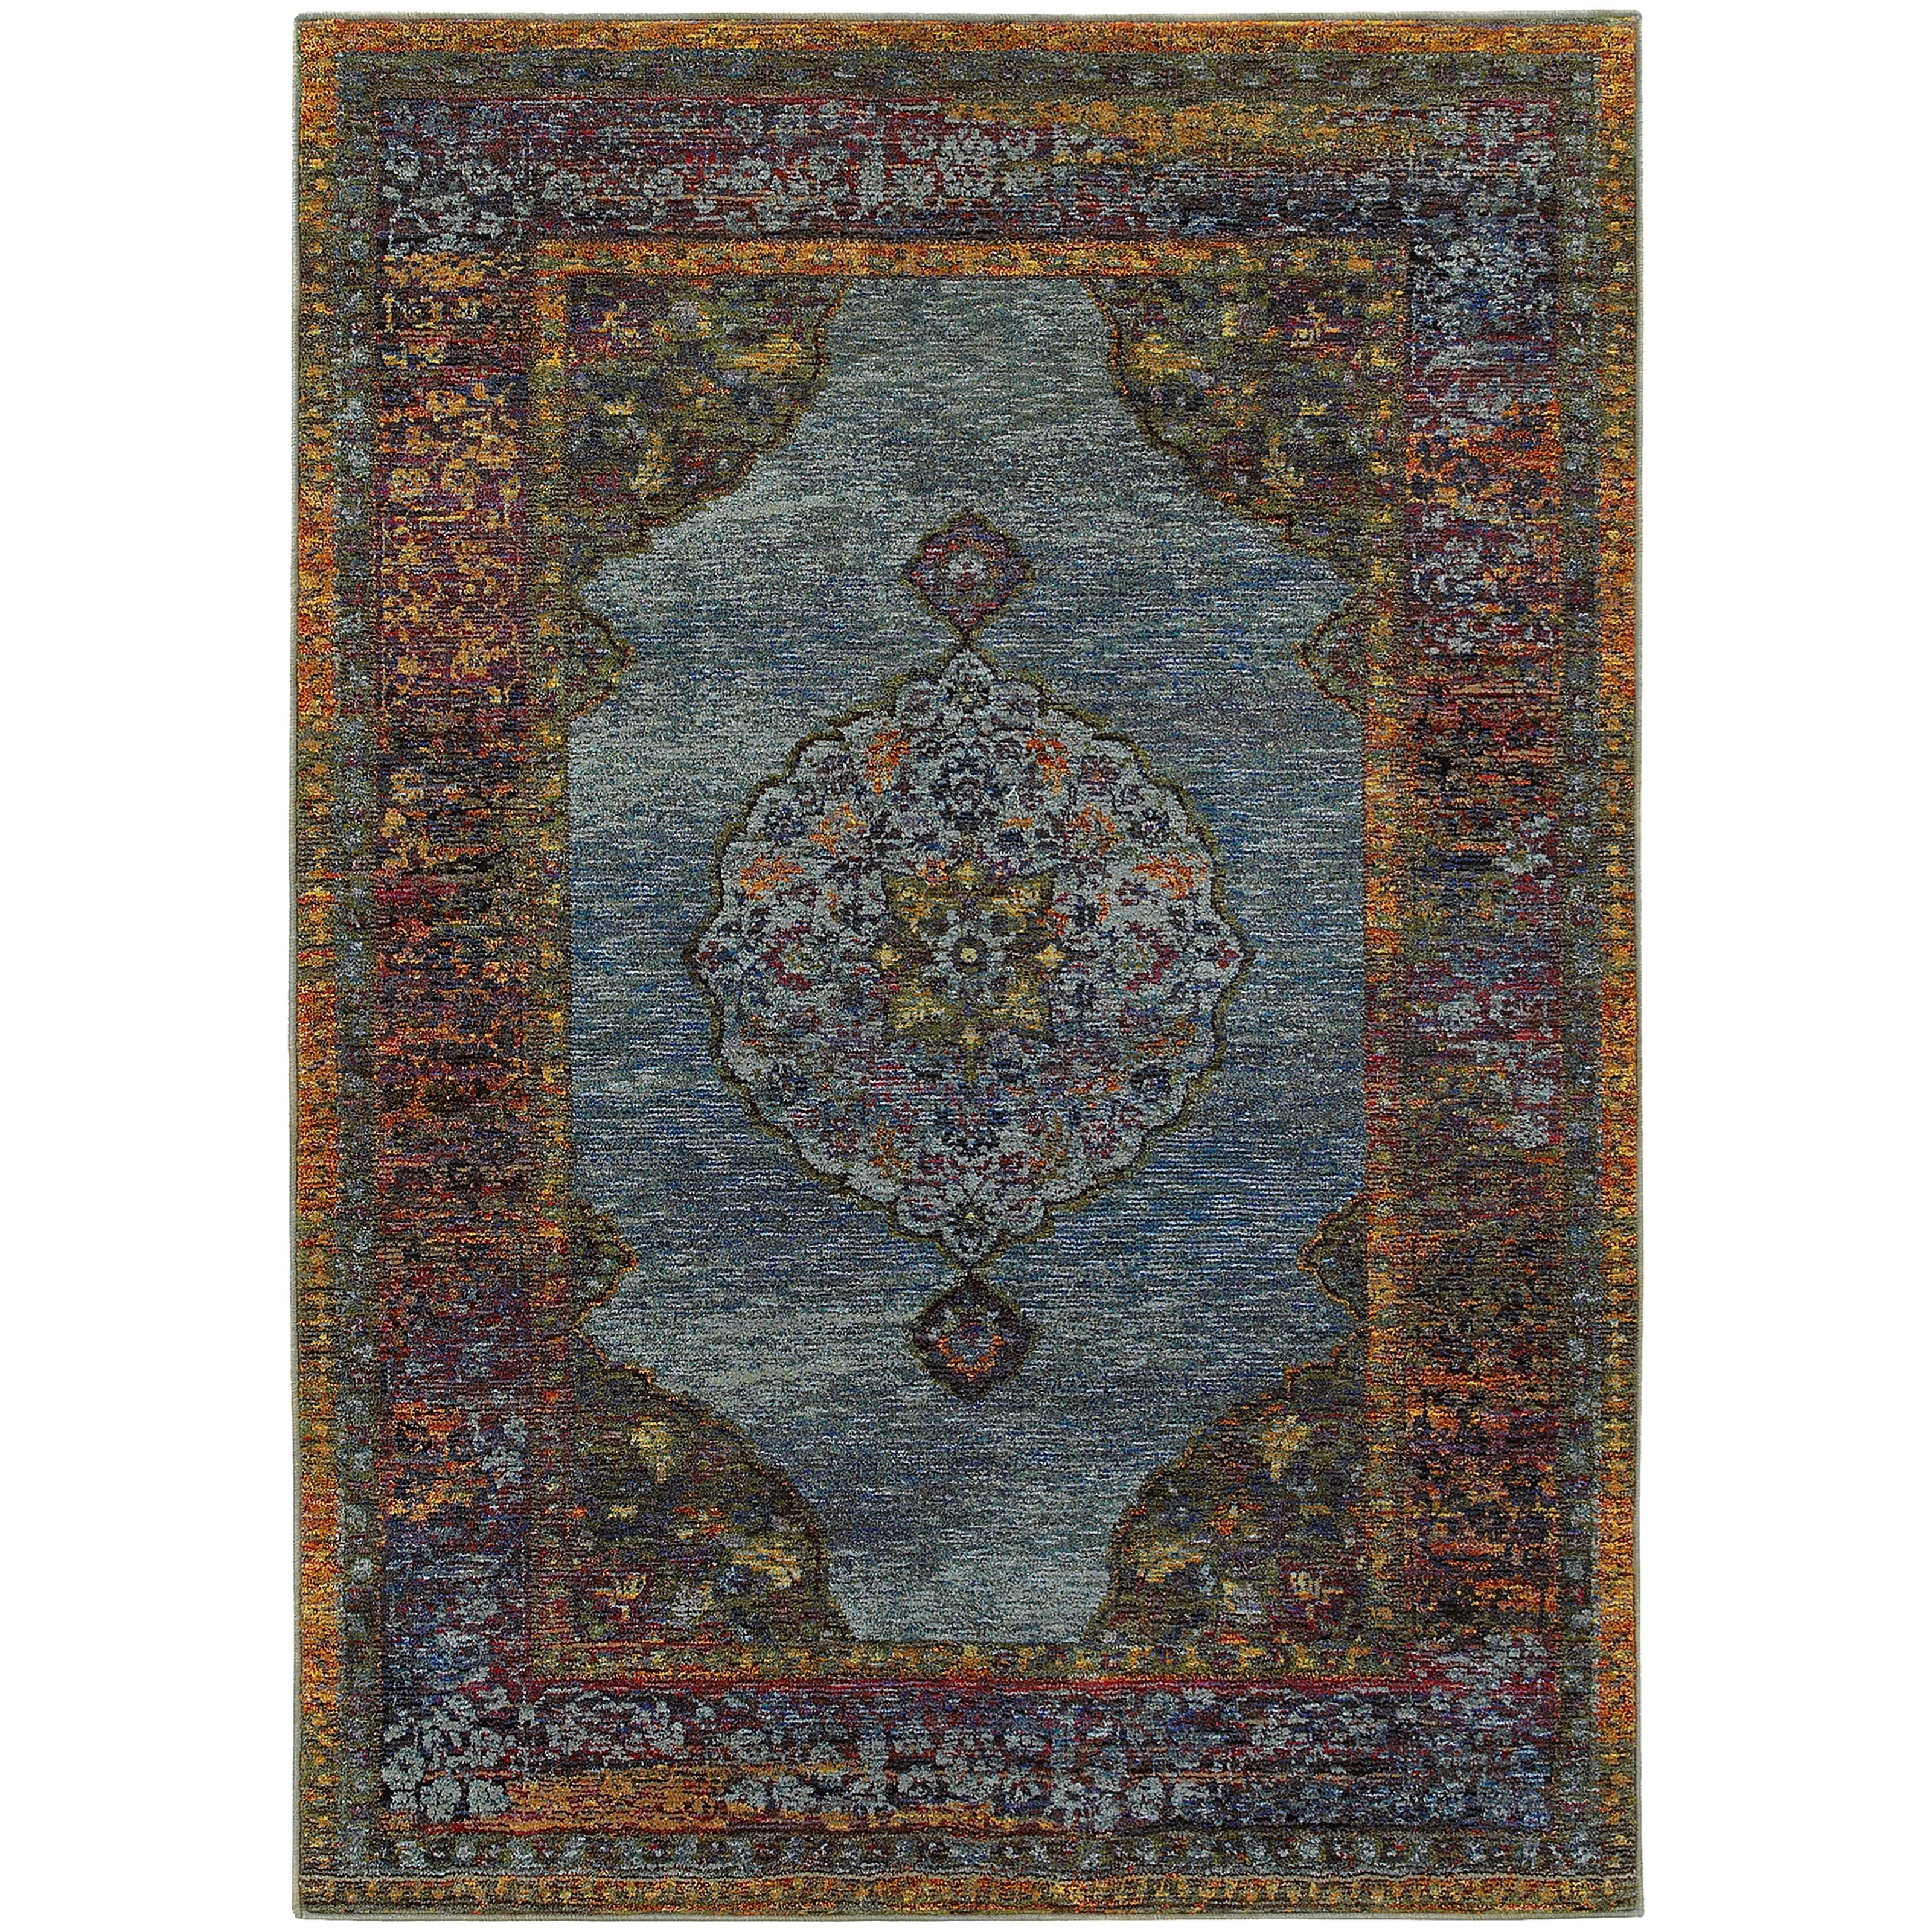 "Andorra 5' 3"" X  7' 3"" Traditional Blue/ Multi Recta by Oriental Weavers at Steger's Furniture"